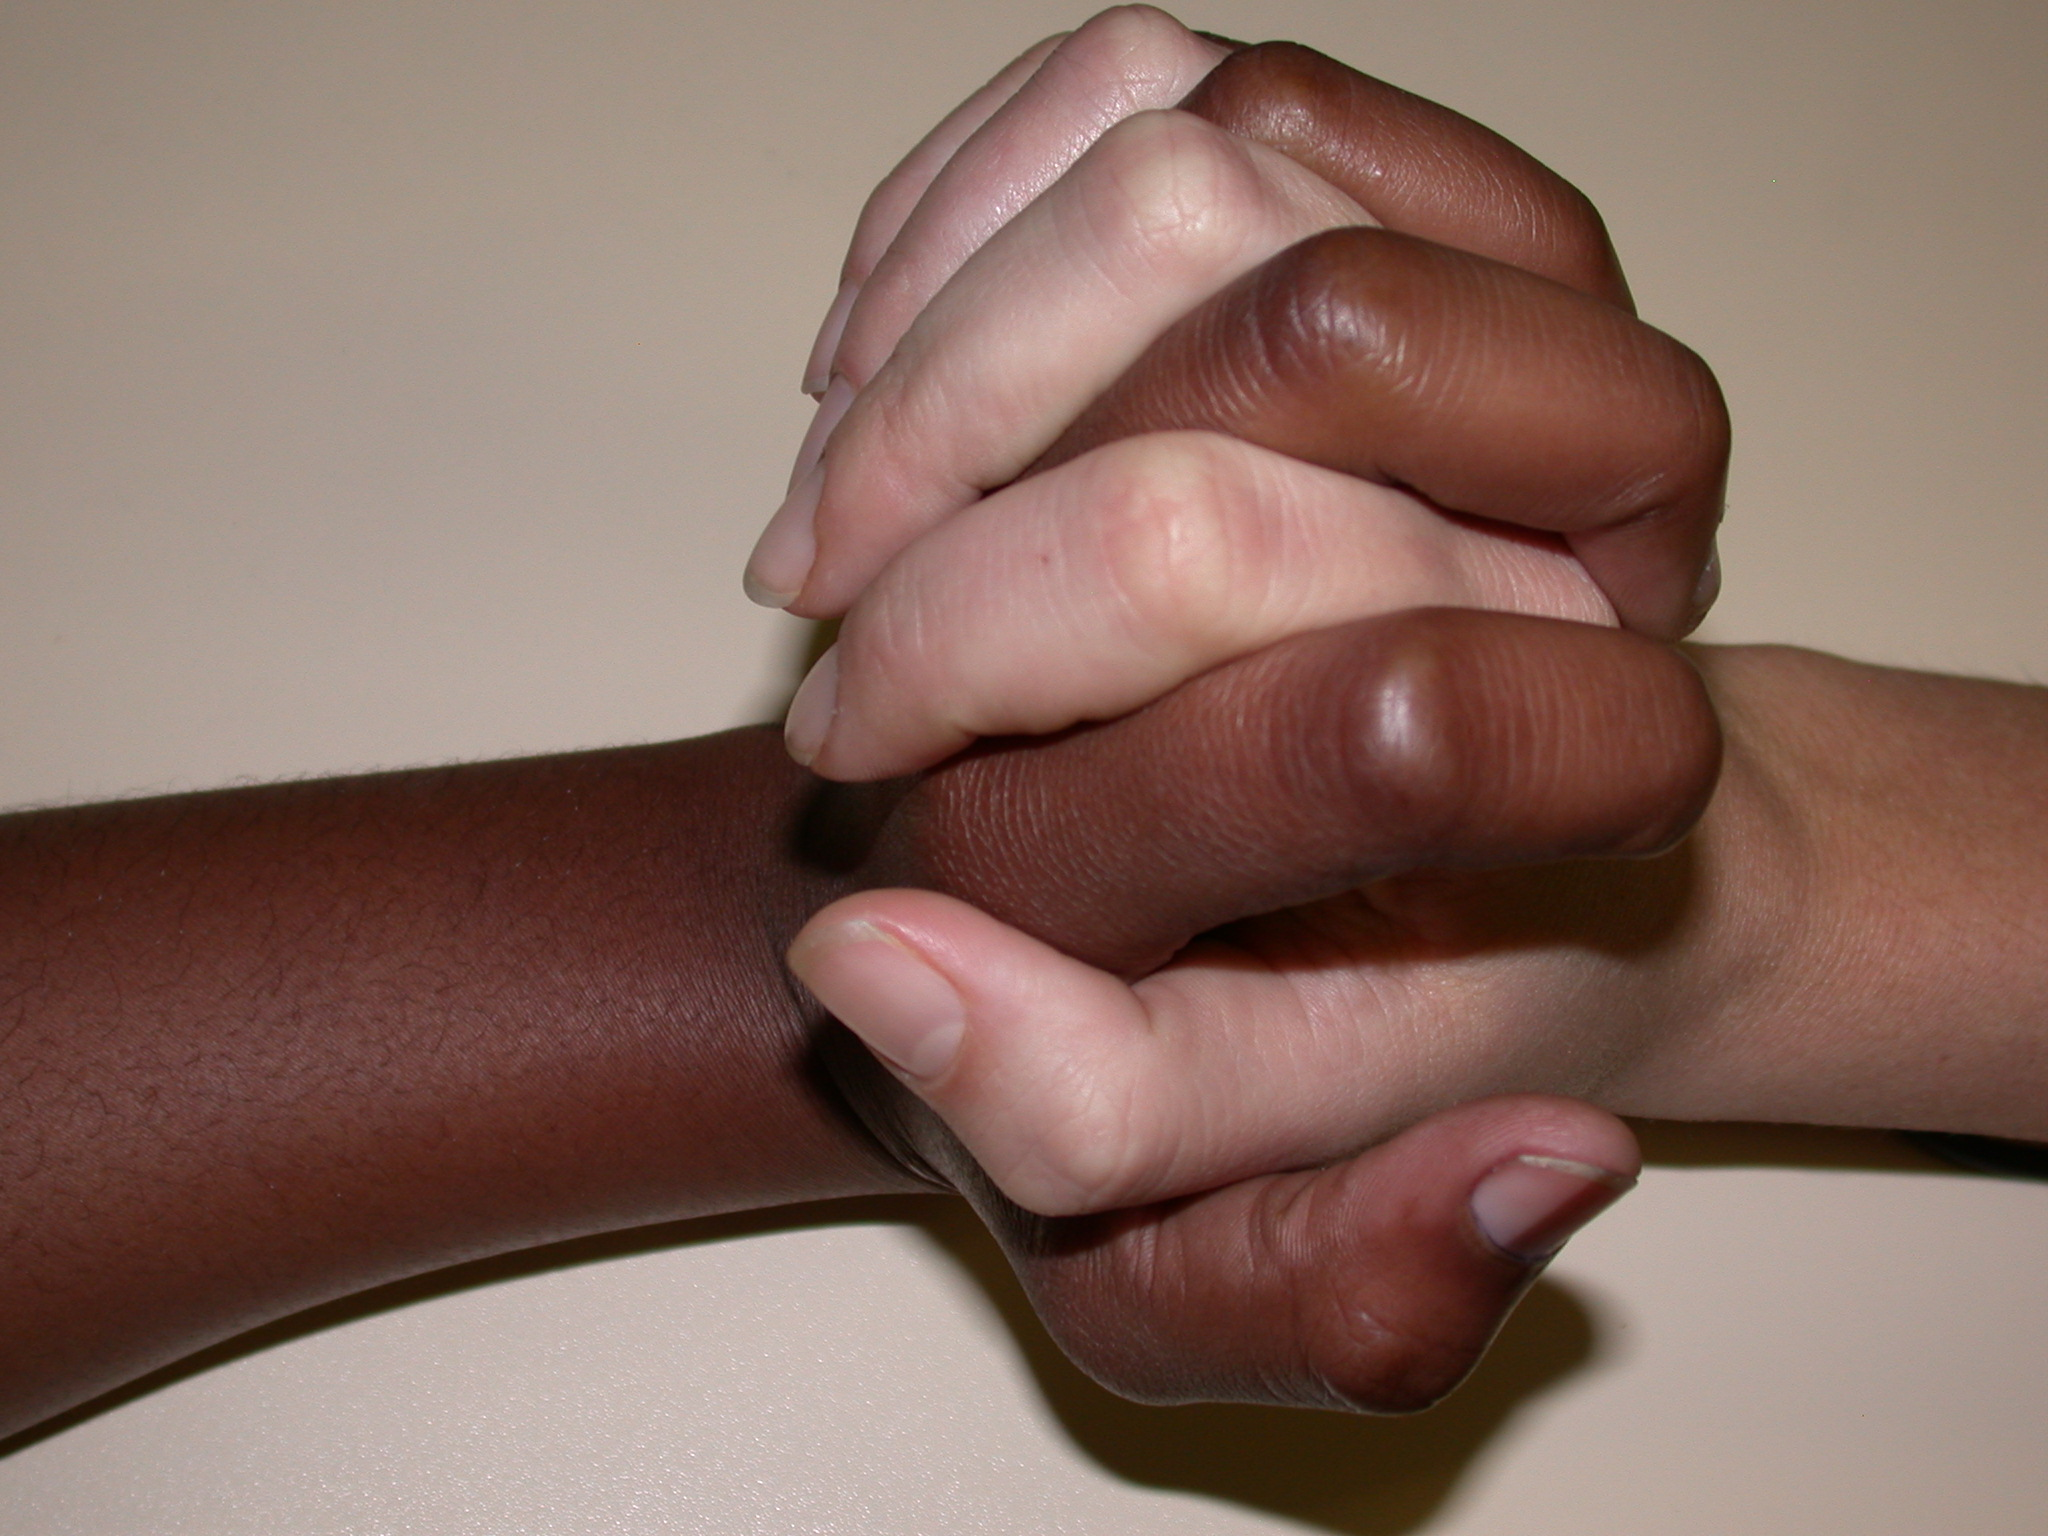 File:Diversity and Unity.jpg - Wikimedia Commons